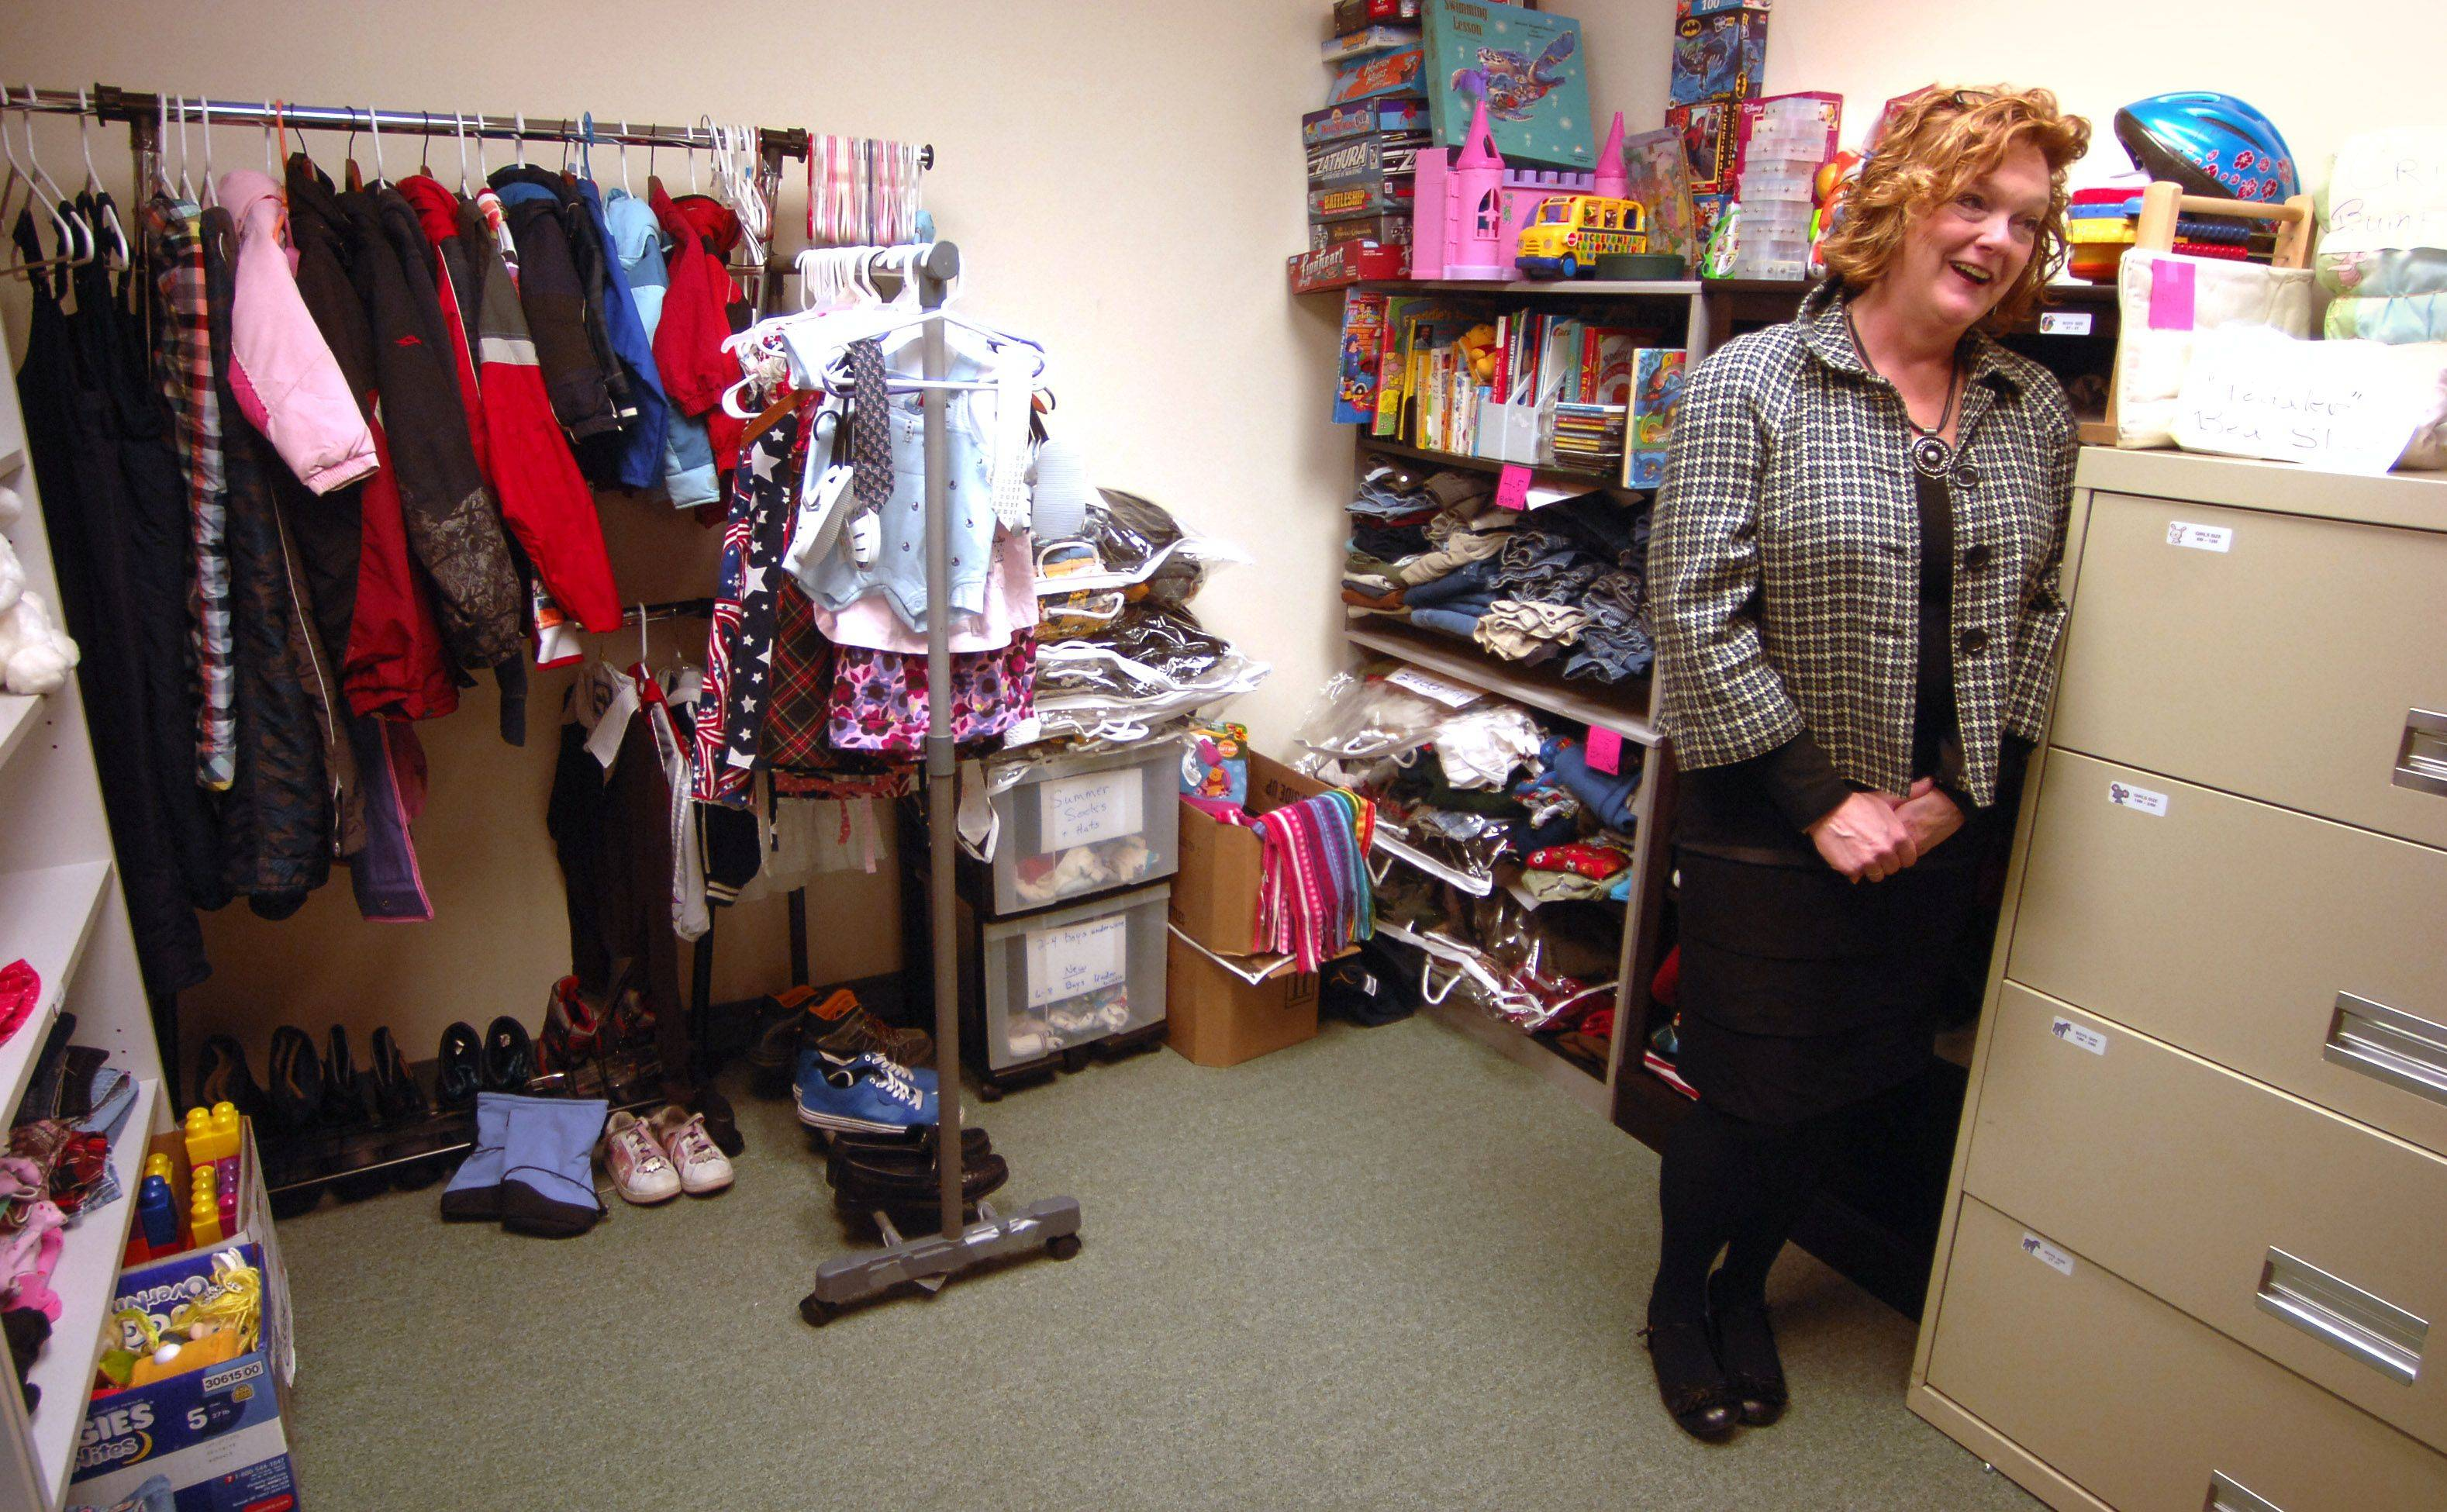 Alpine Chapel's Thrive ministry in Lake Zurich provides clothing and other services to those in need.